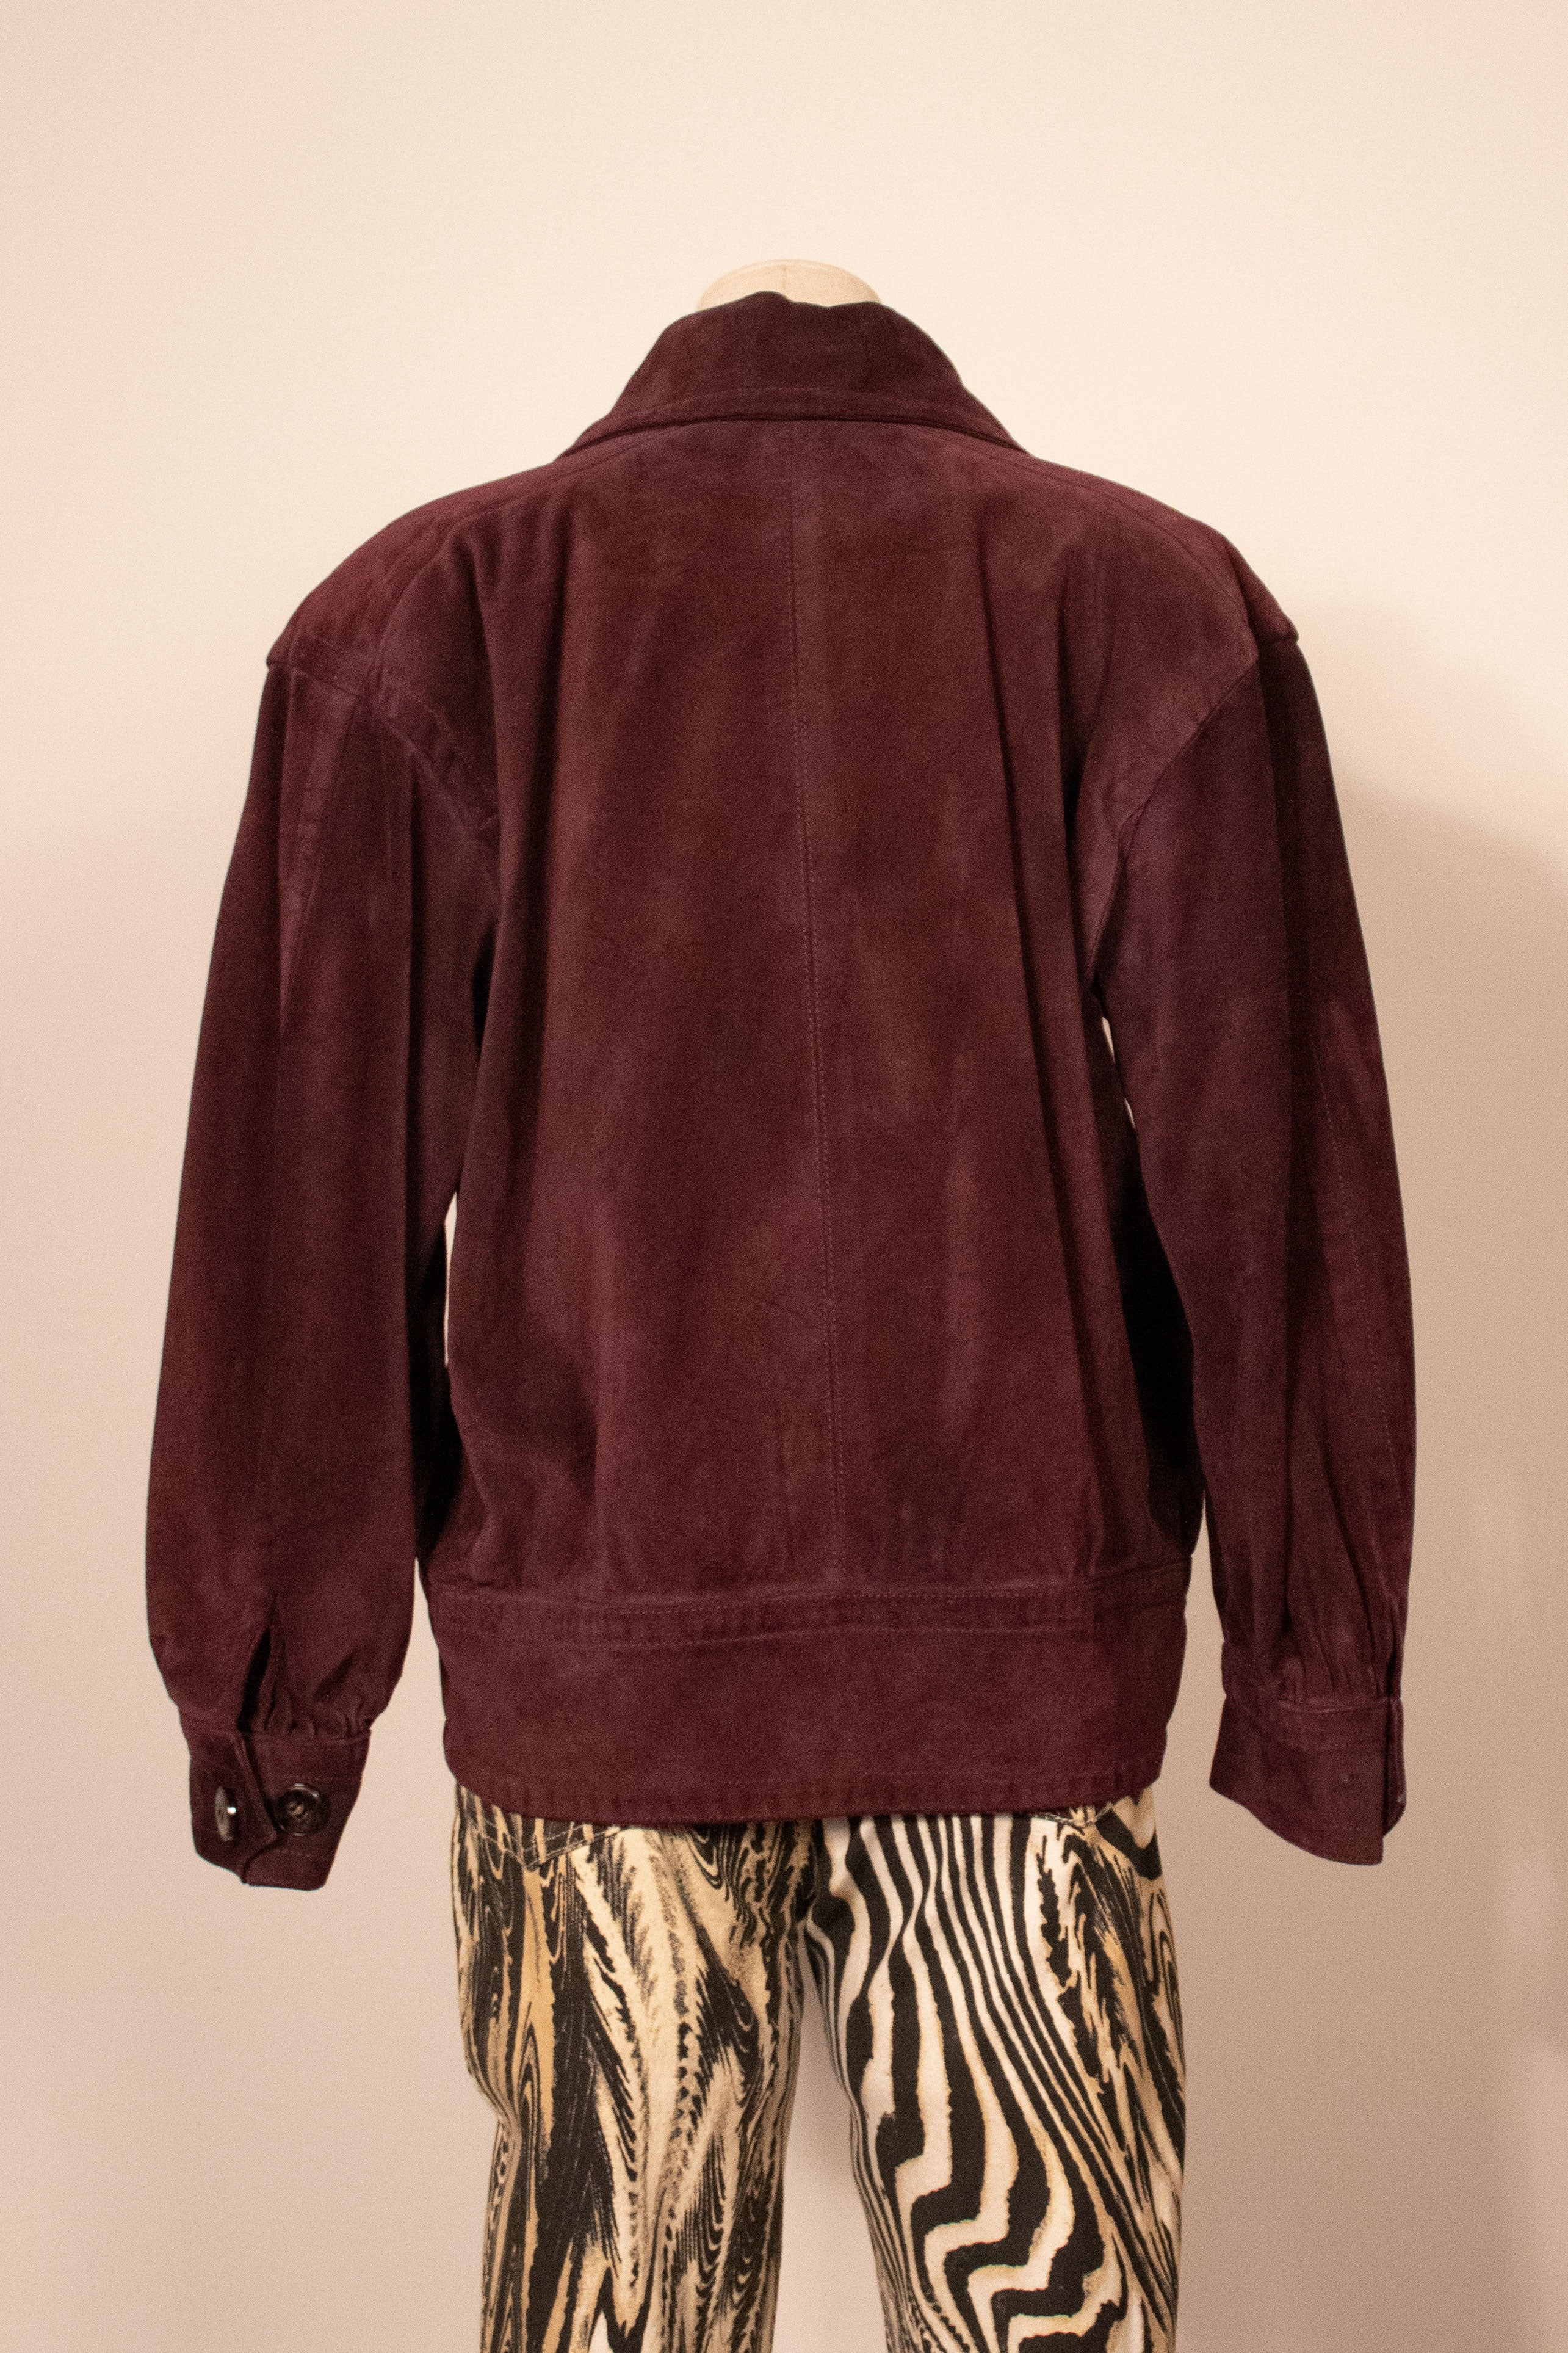 YSL plum suede bomber jacket